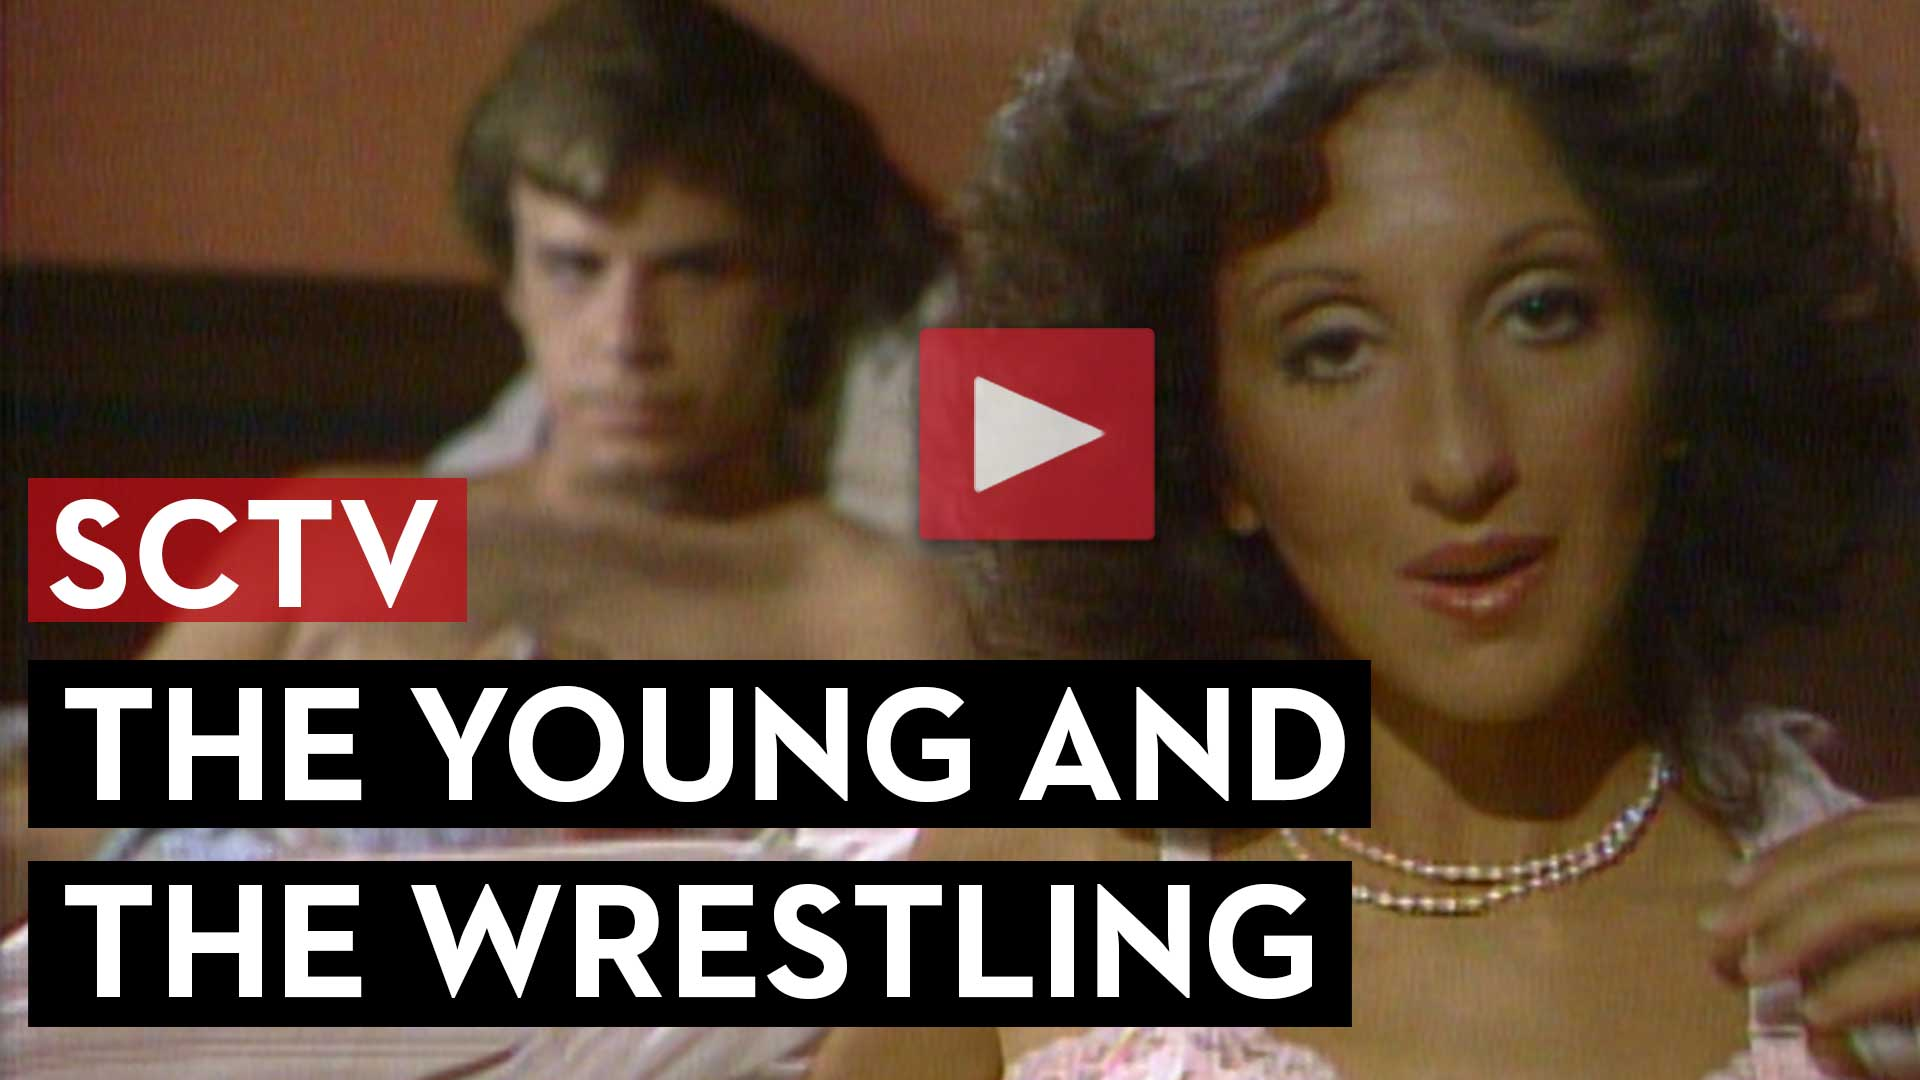 SCTV The Young and the Wrestling